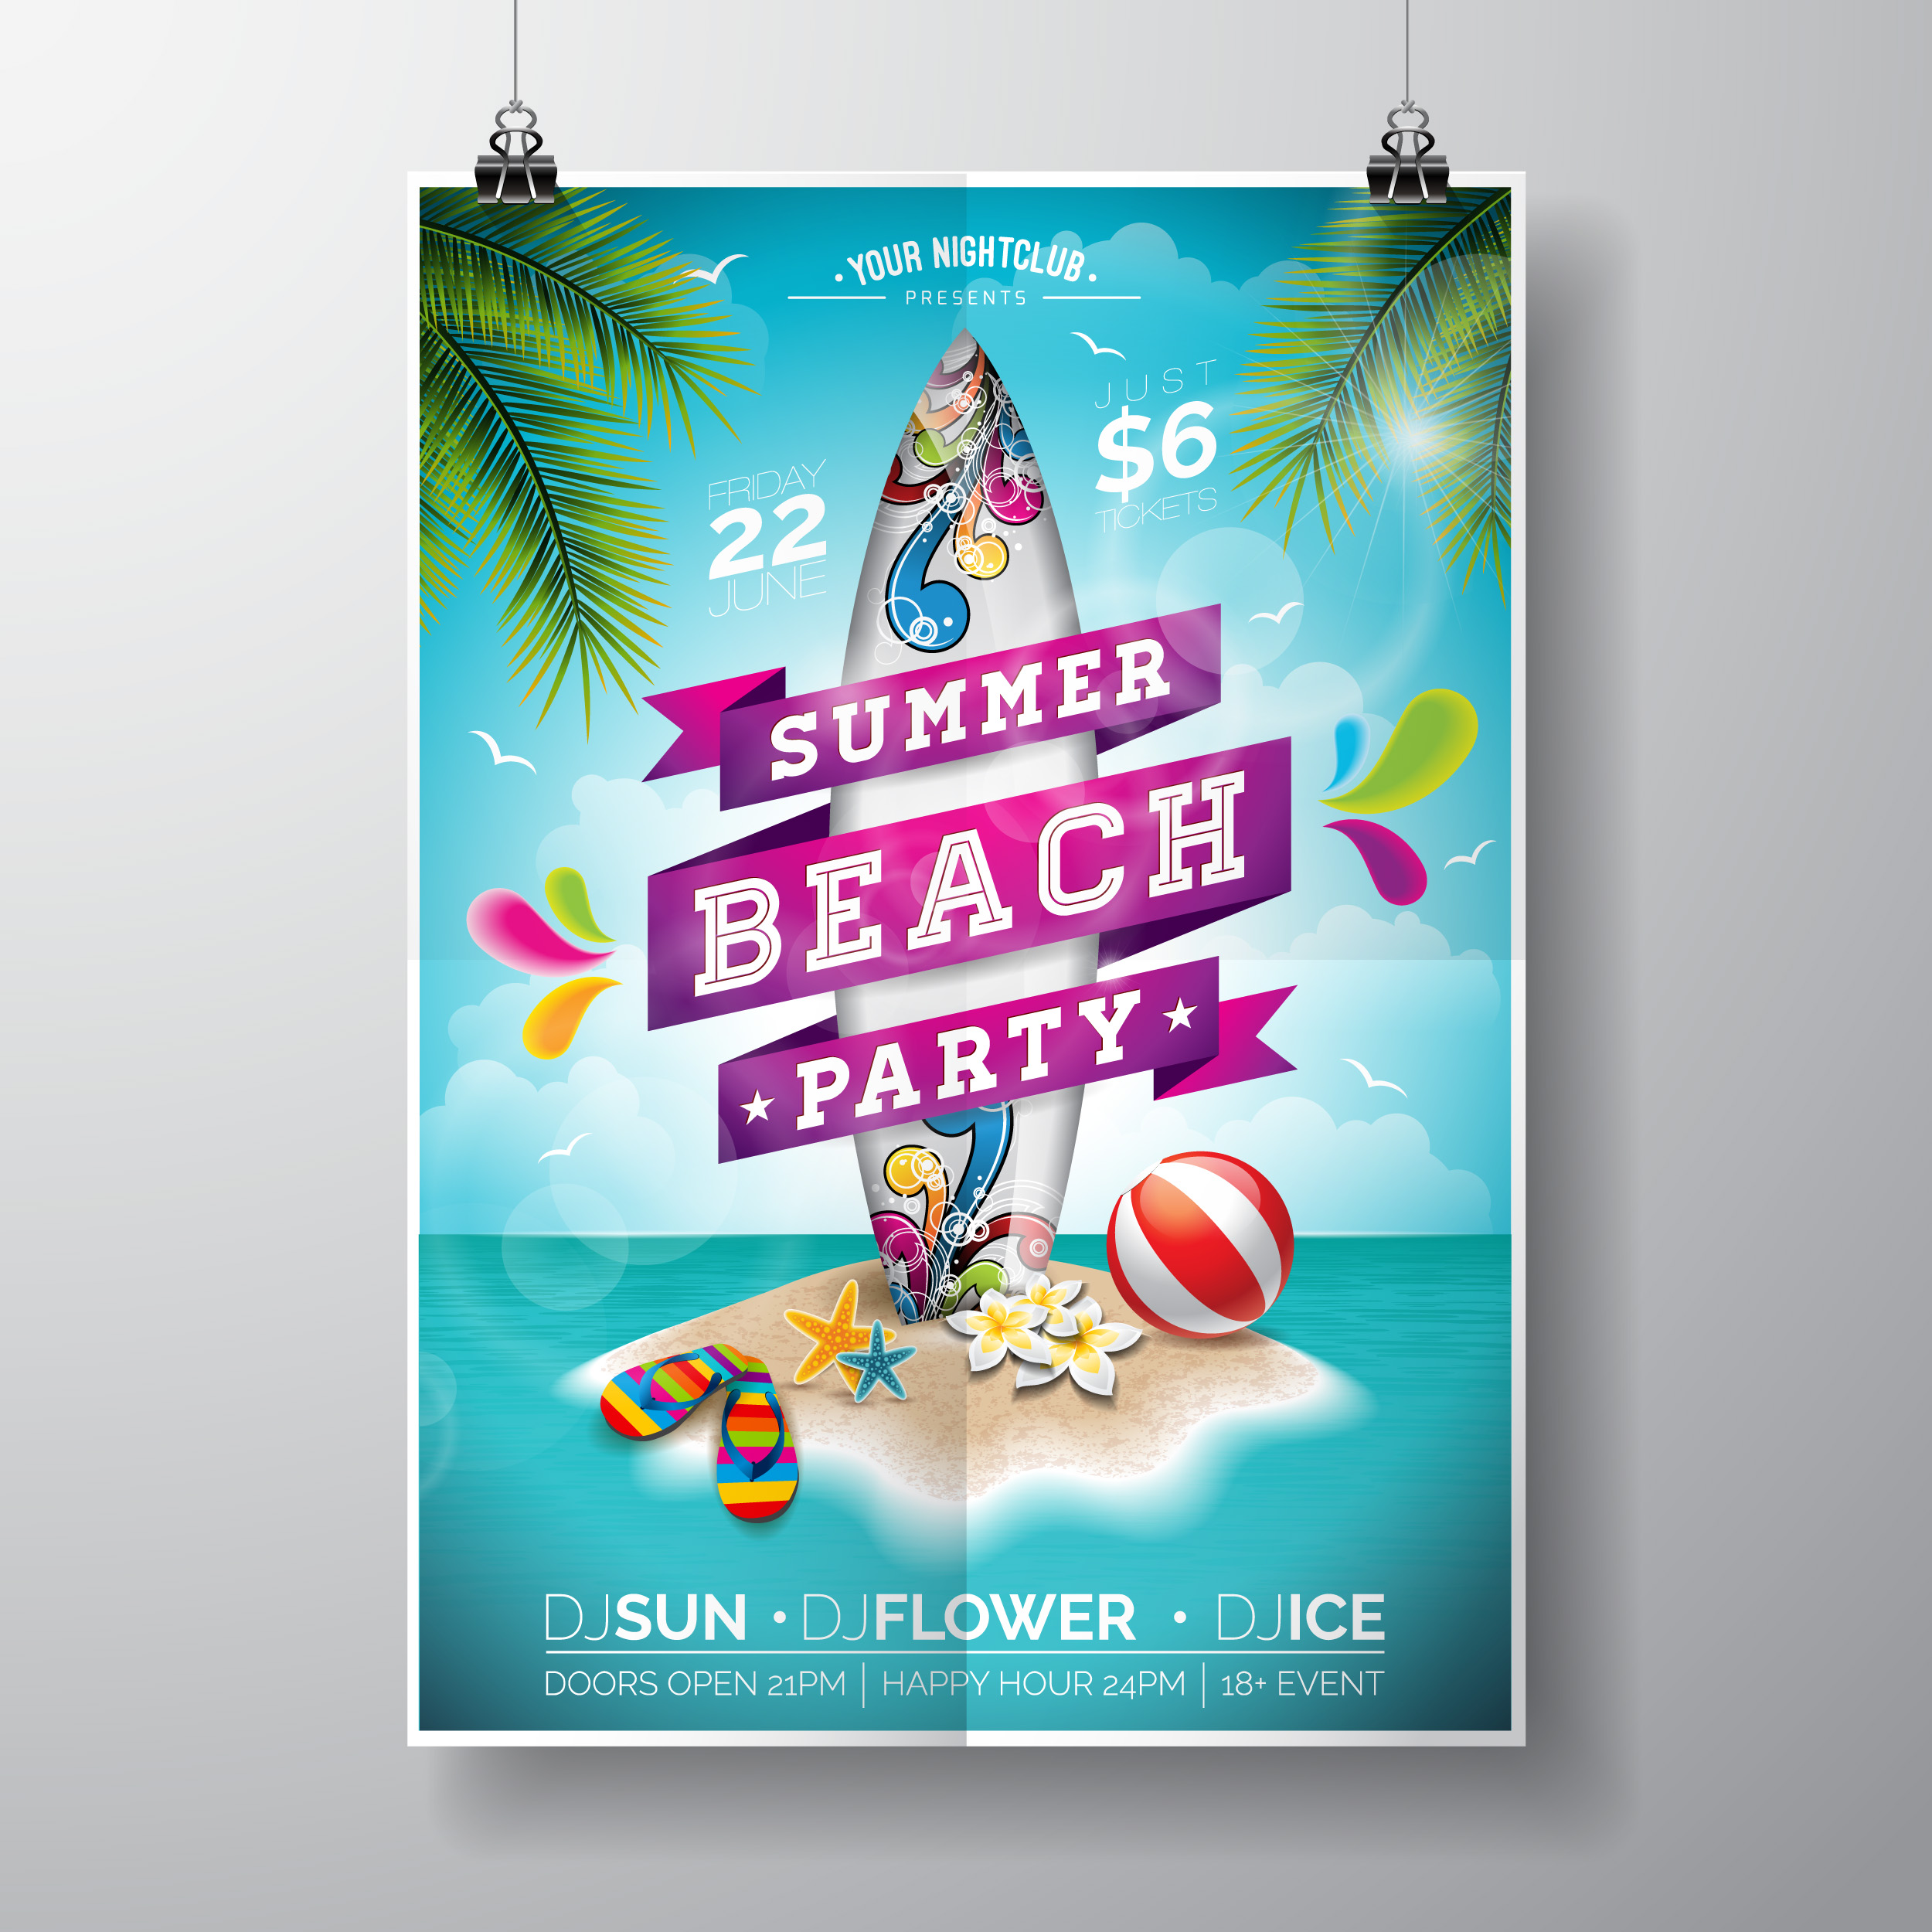 Party Island Beach: Vector Summer Beach Party Flyer Design With Surf Board And